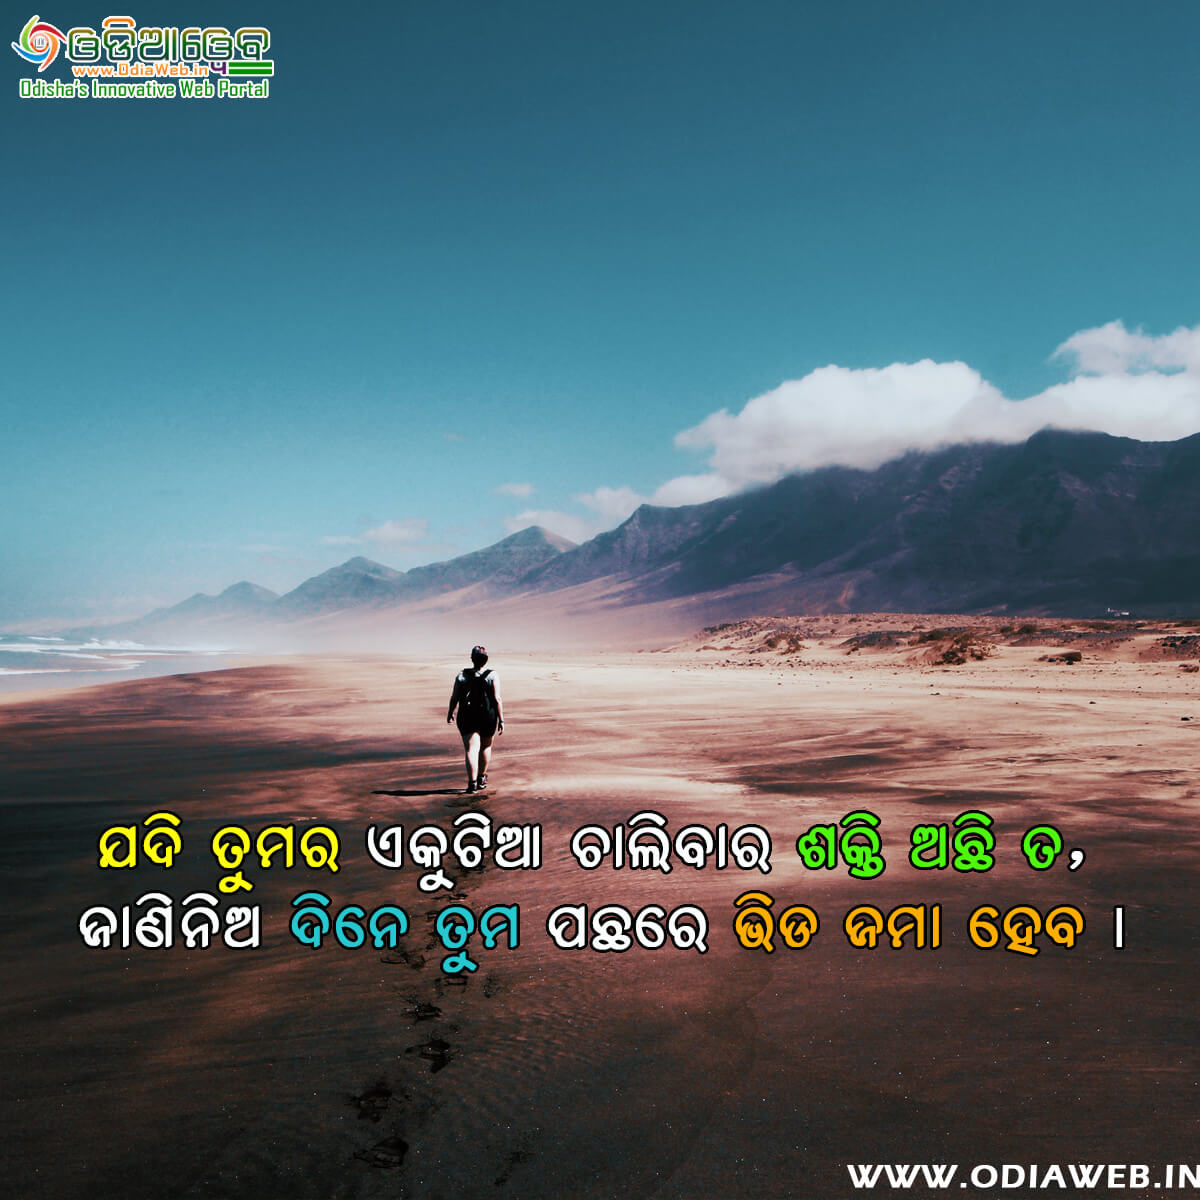 Odia ouotes on life